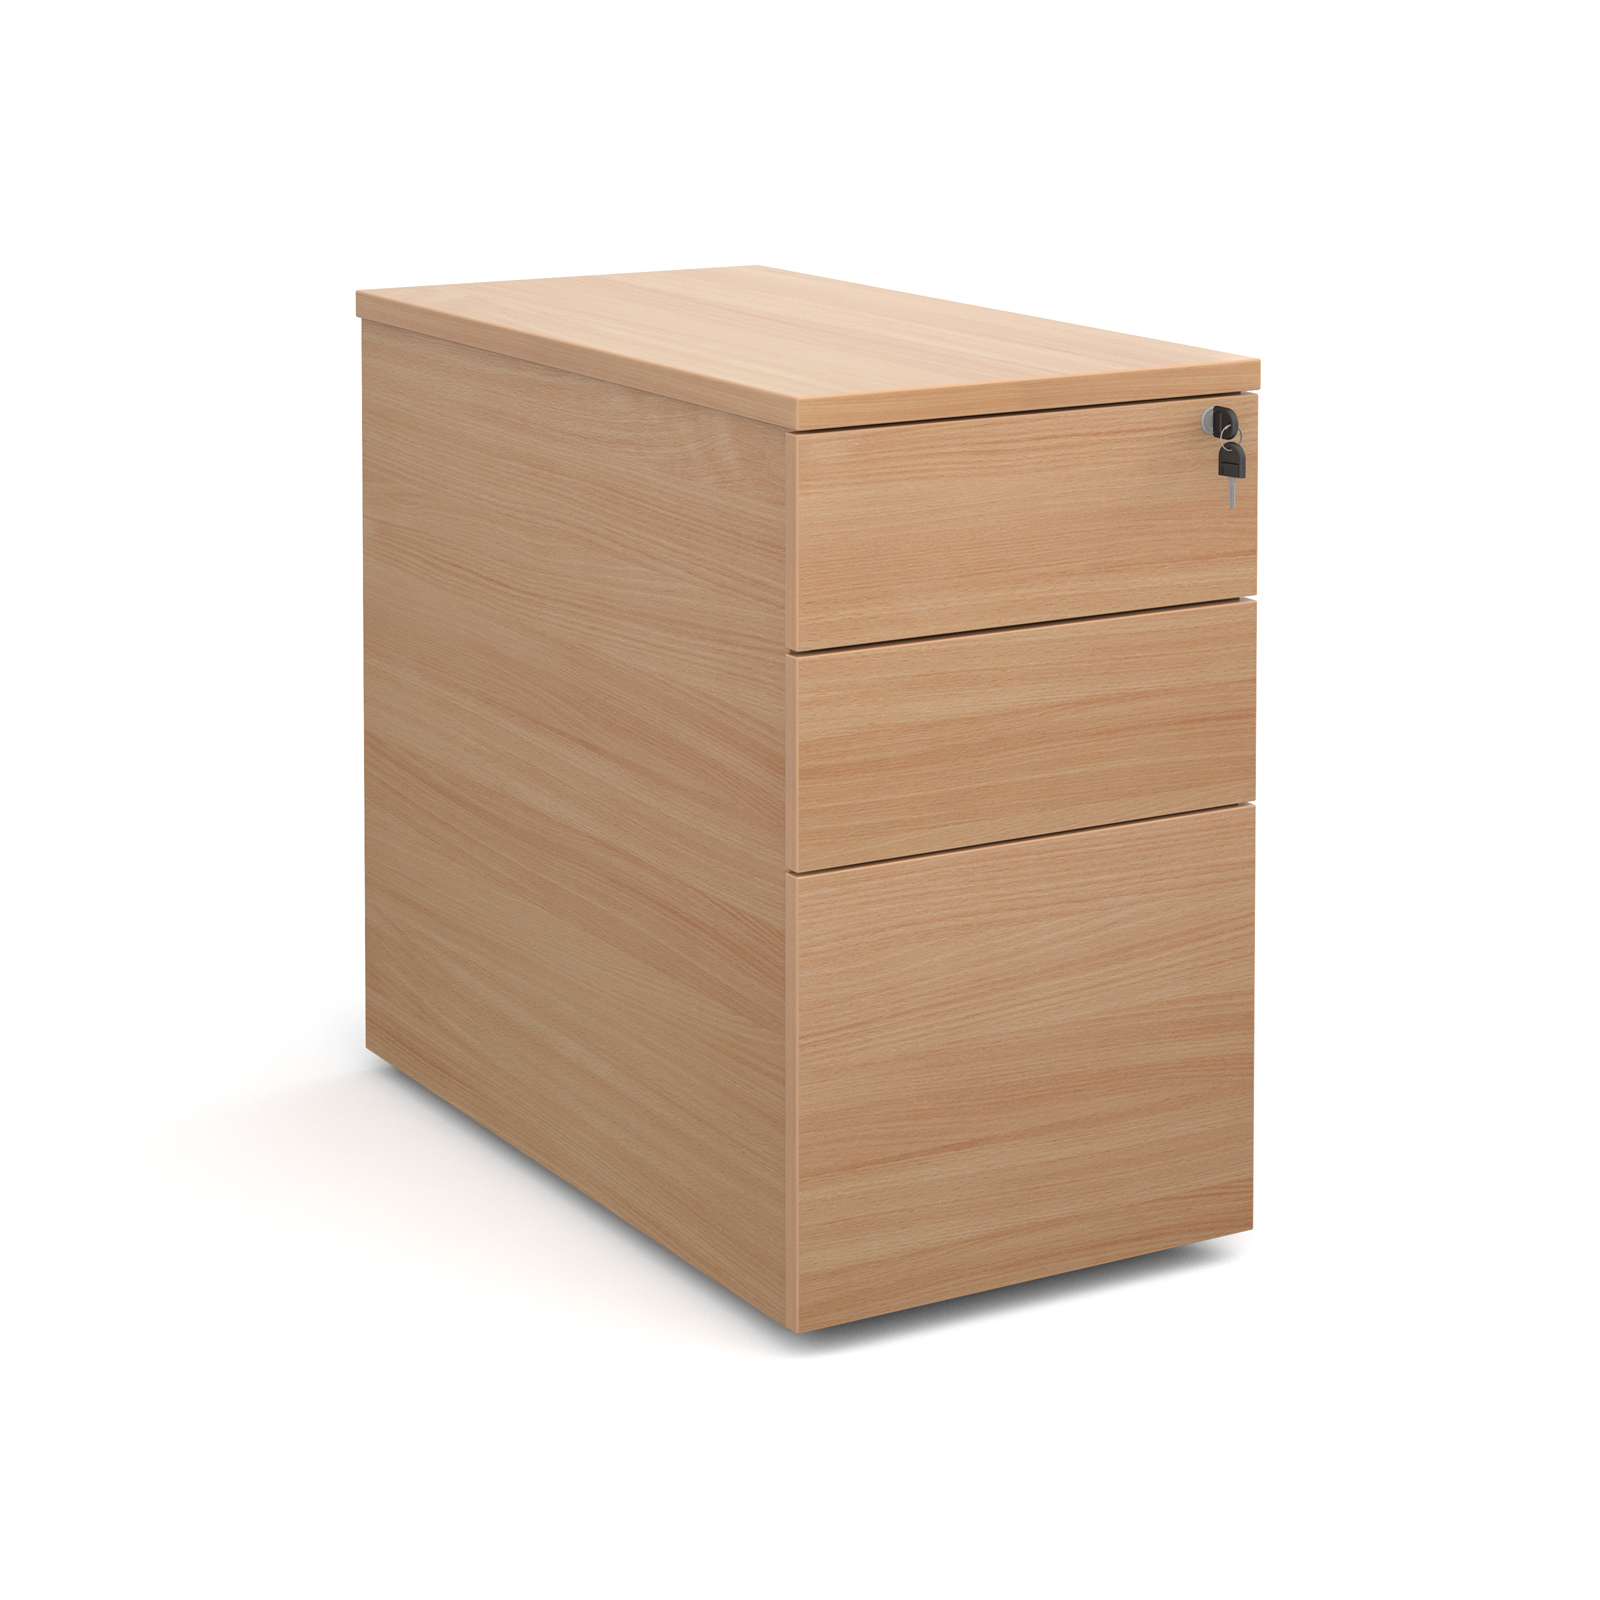 800mm Deep Desk High Pedestal in beech